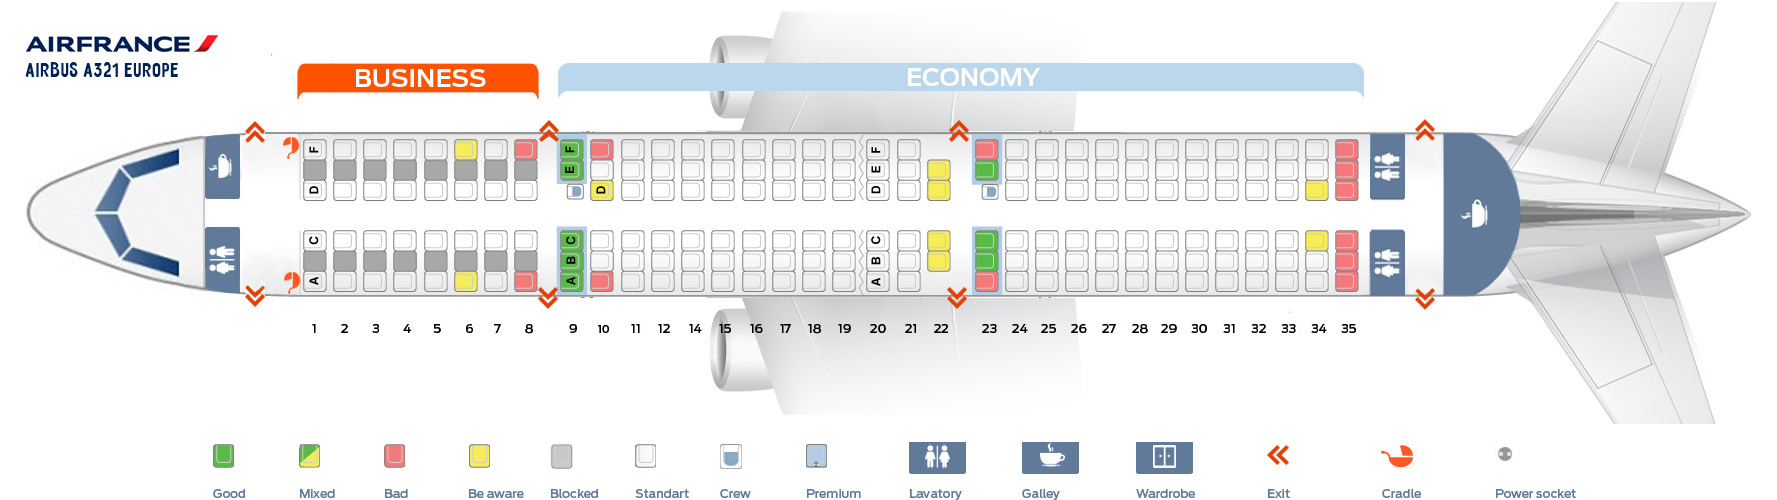 Seat Map Airbus A321 Europe Air France